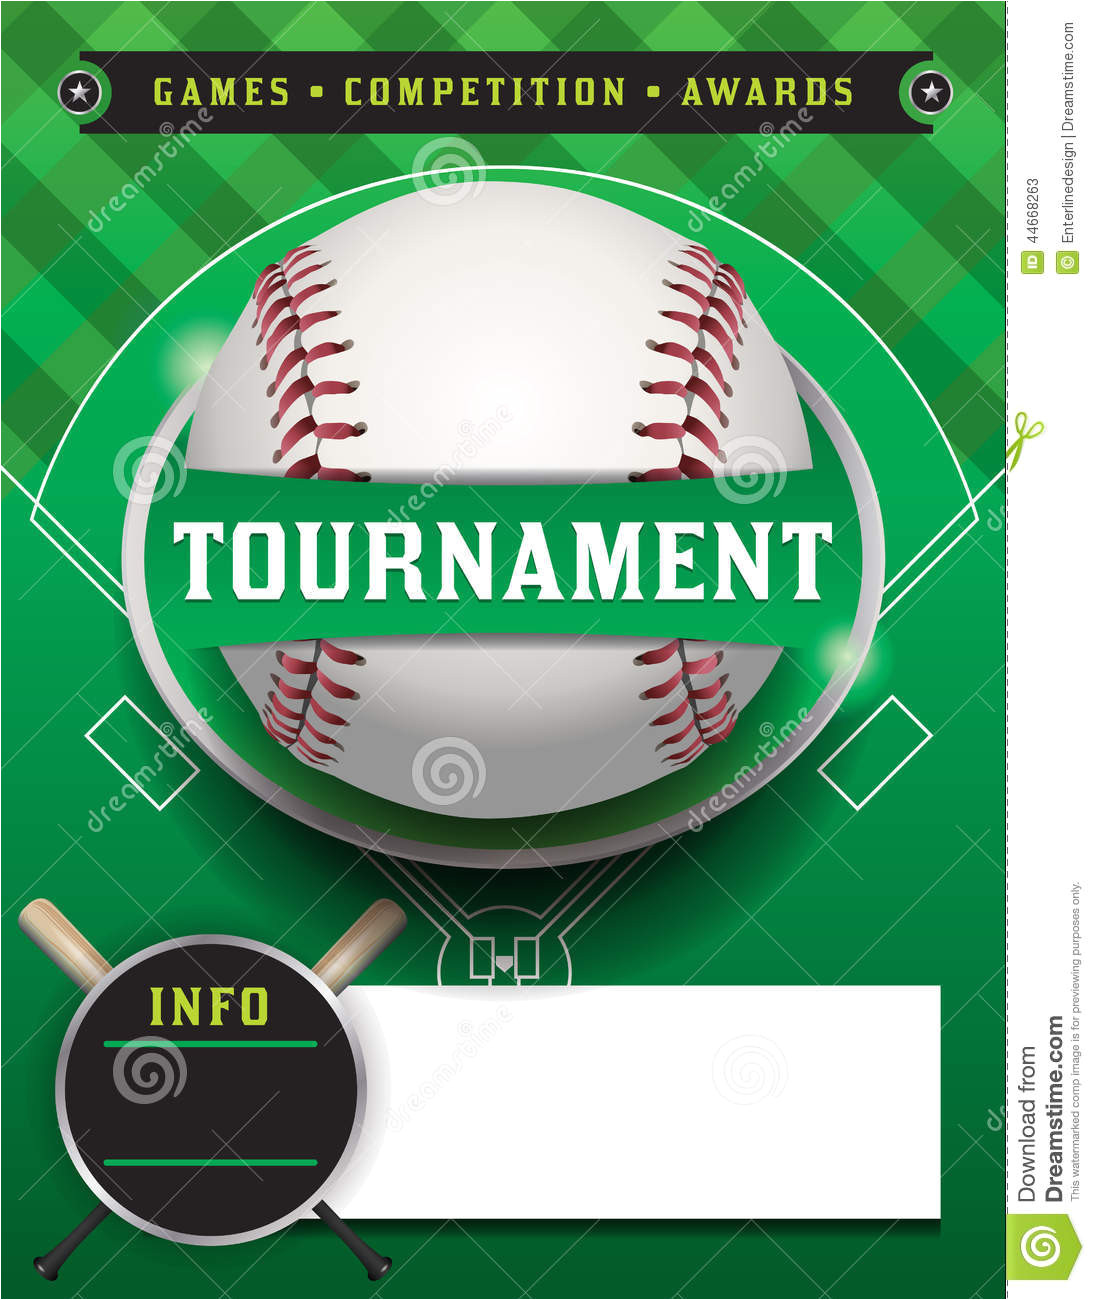 stock illustration baseball tournament template illustration flyer room copy space vector eps available eps file contains transparencies file image44668263